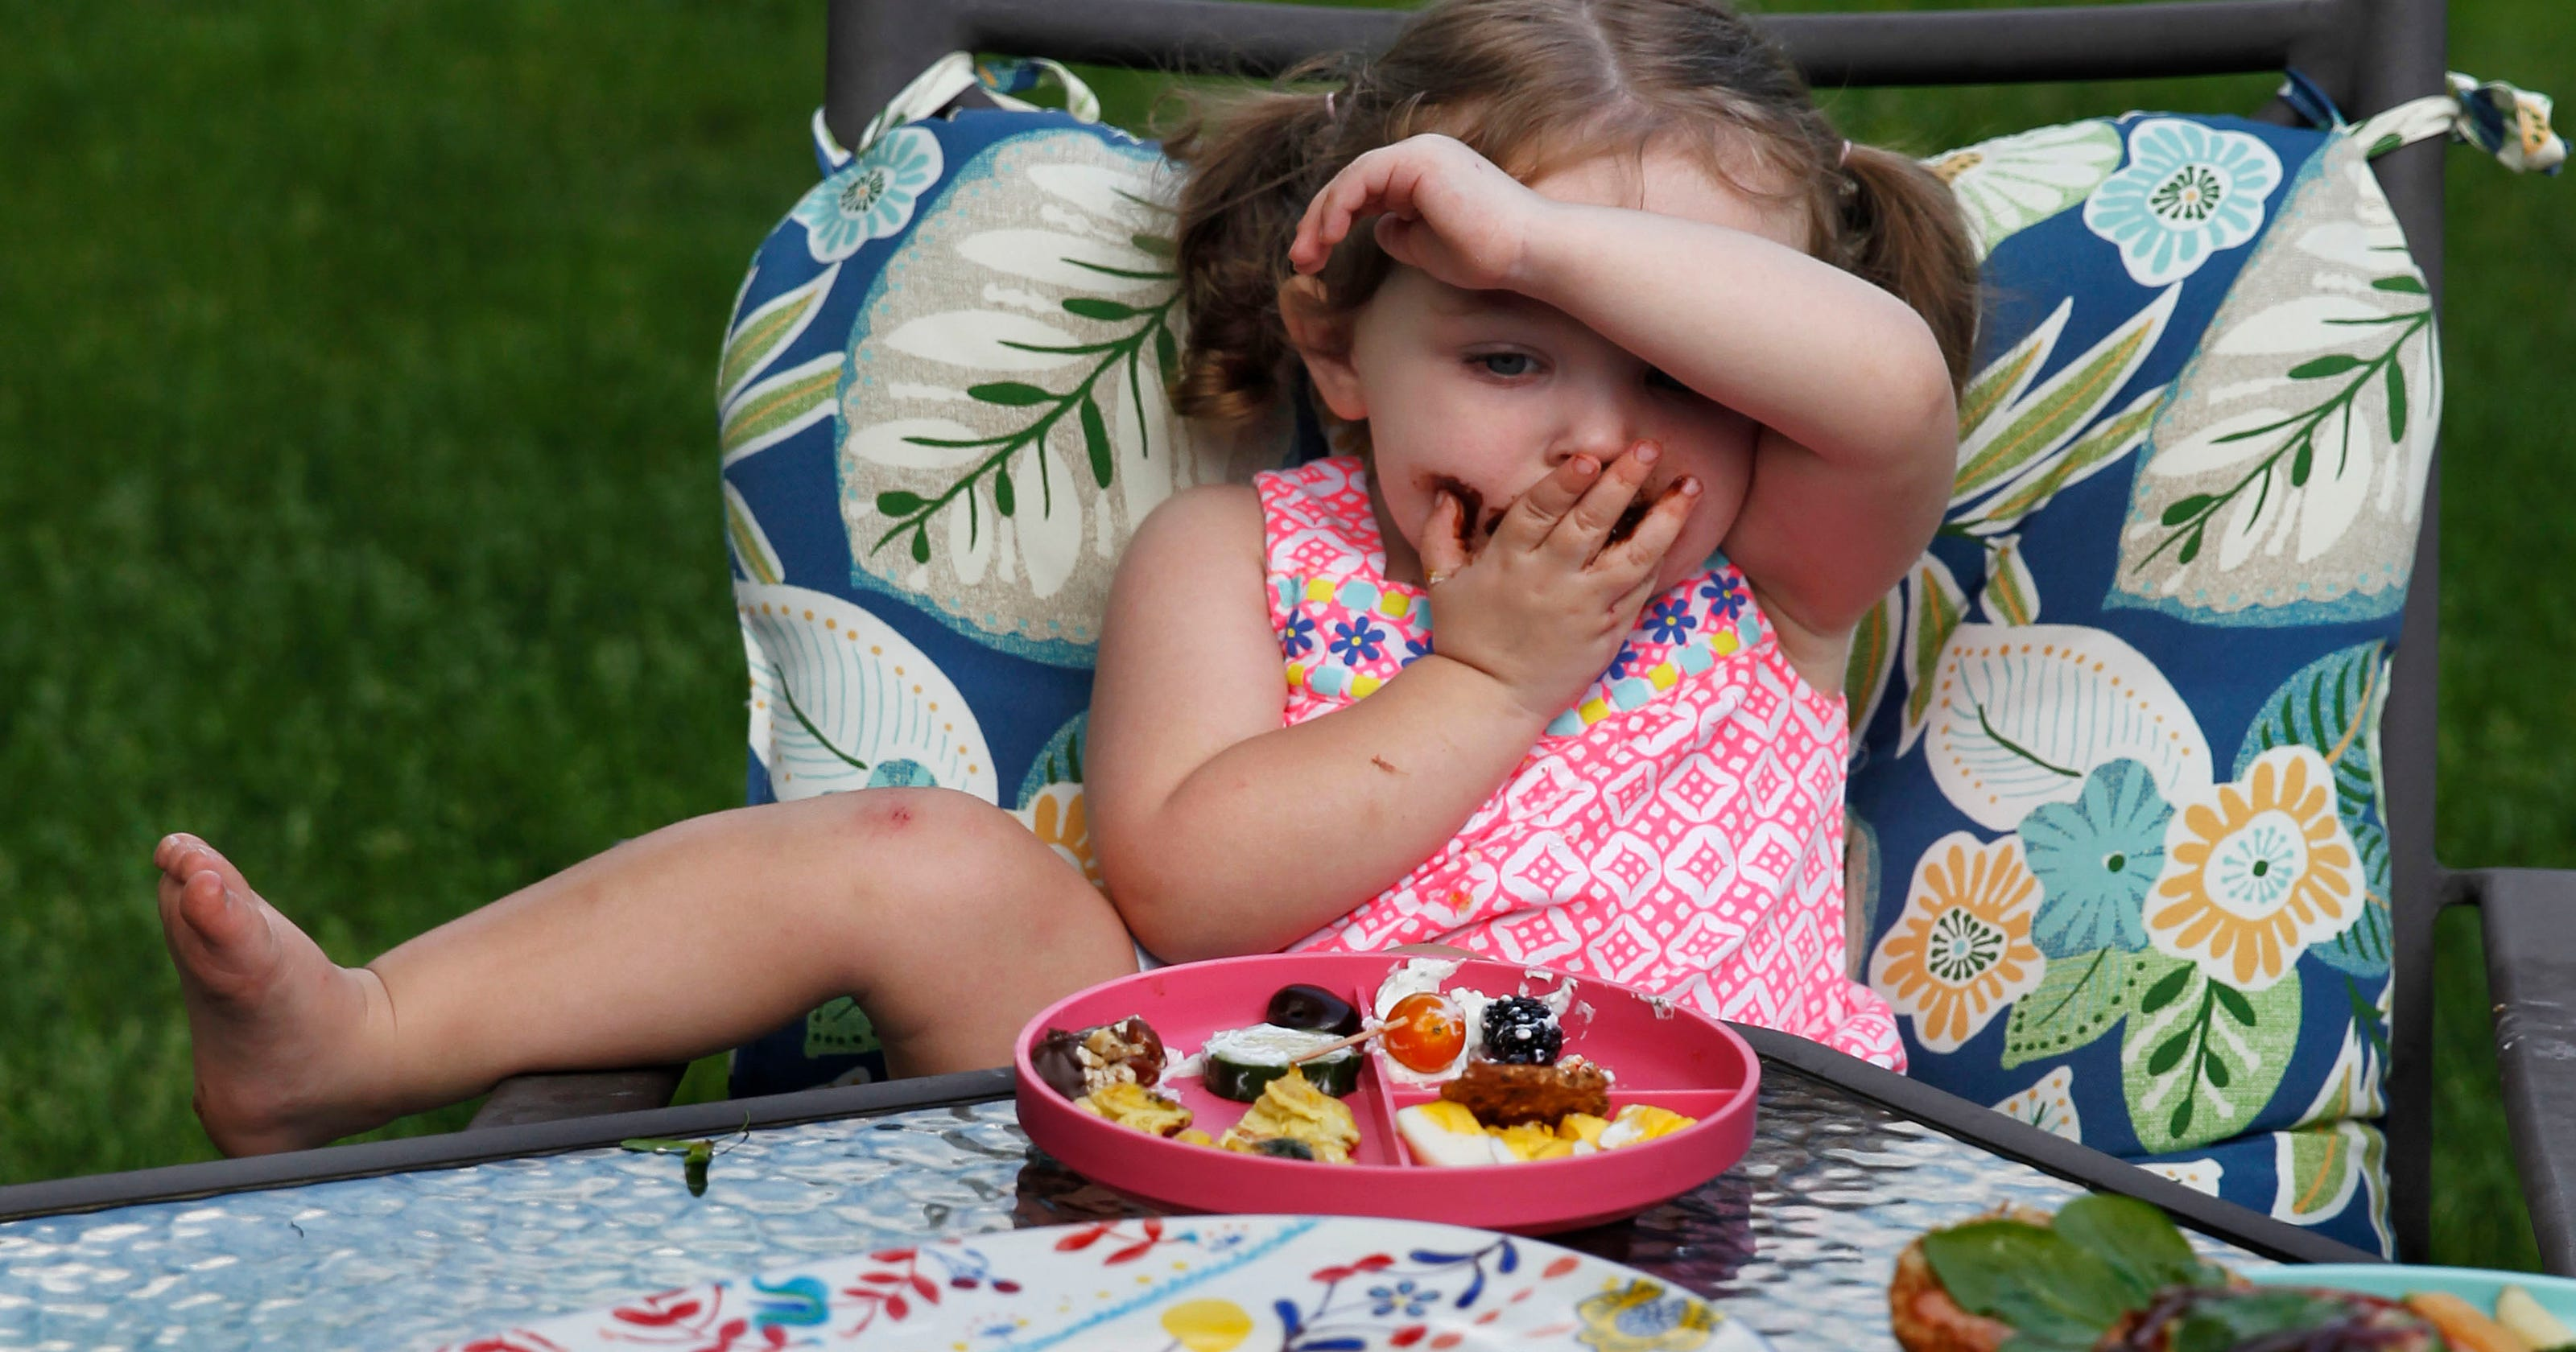 Taking Picky Eating To Extreme >> Strategies To Get Picky Eaters Of All Ages To Try New Foods